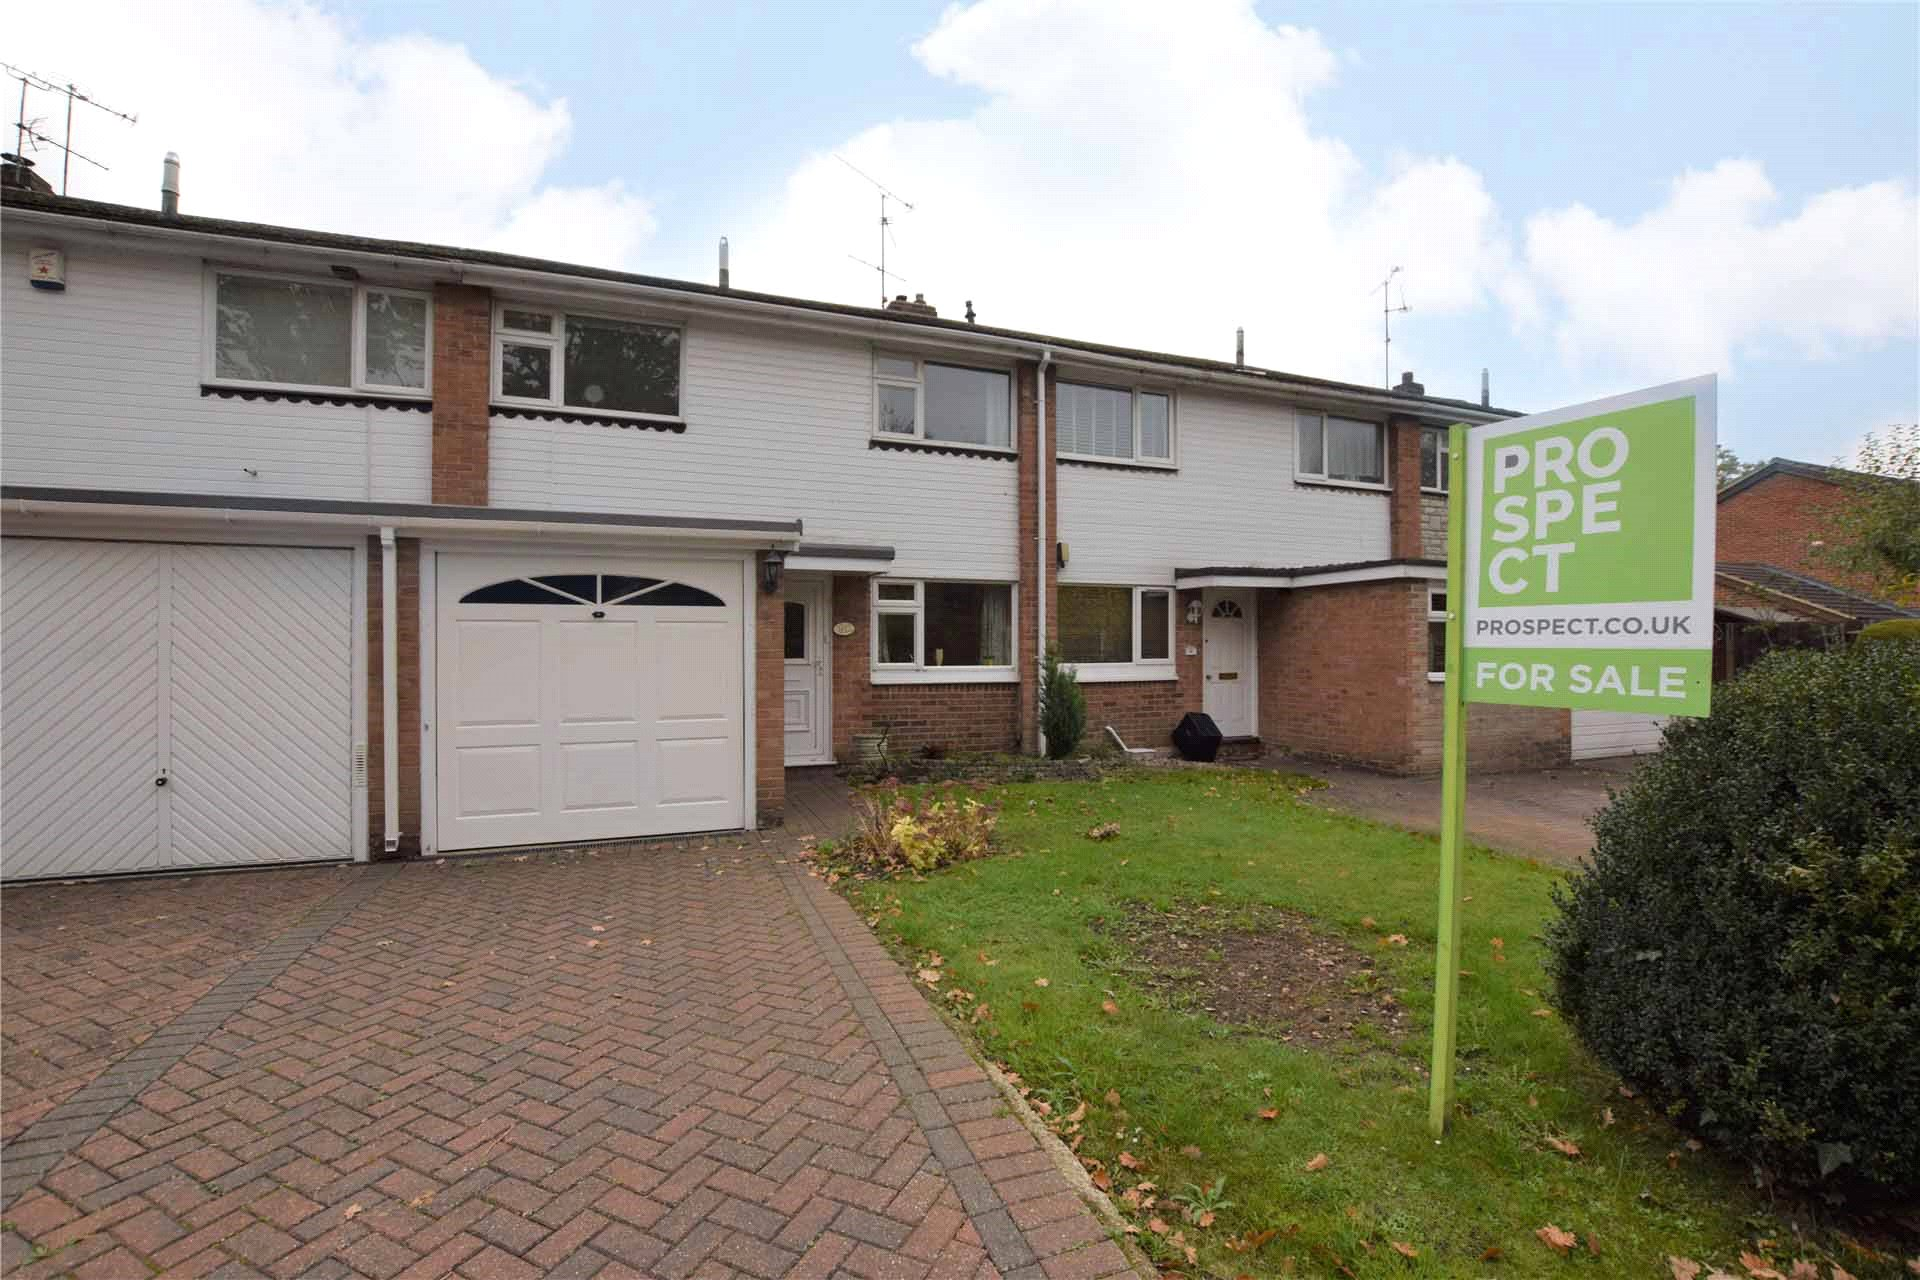 3 Bedrooms Terraced House for sale in Bathurst Road, Winnersh, Wokingham, Berkshire, RG41